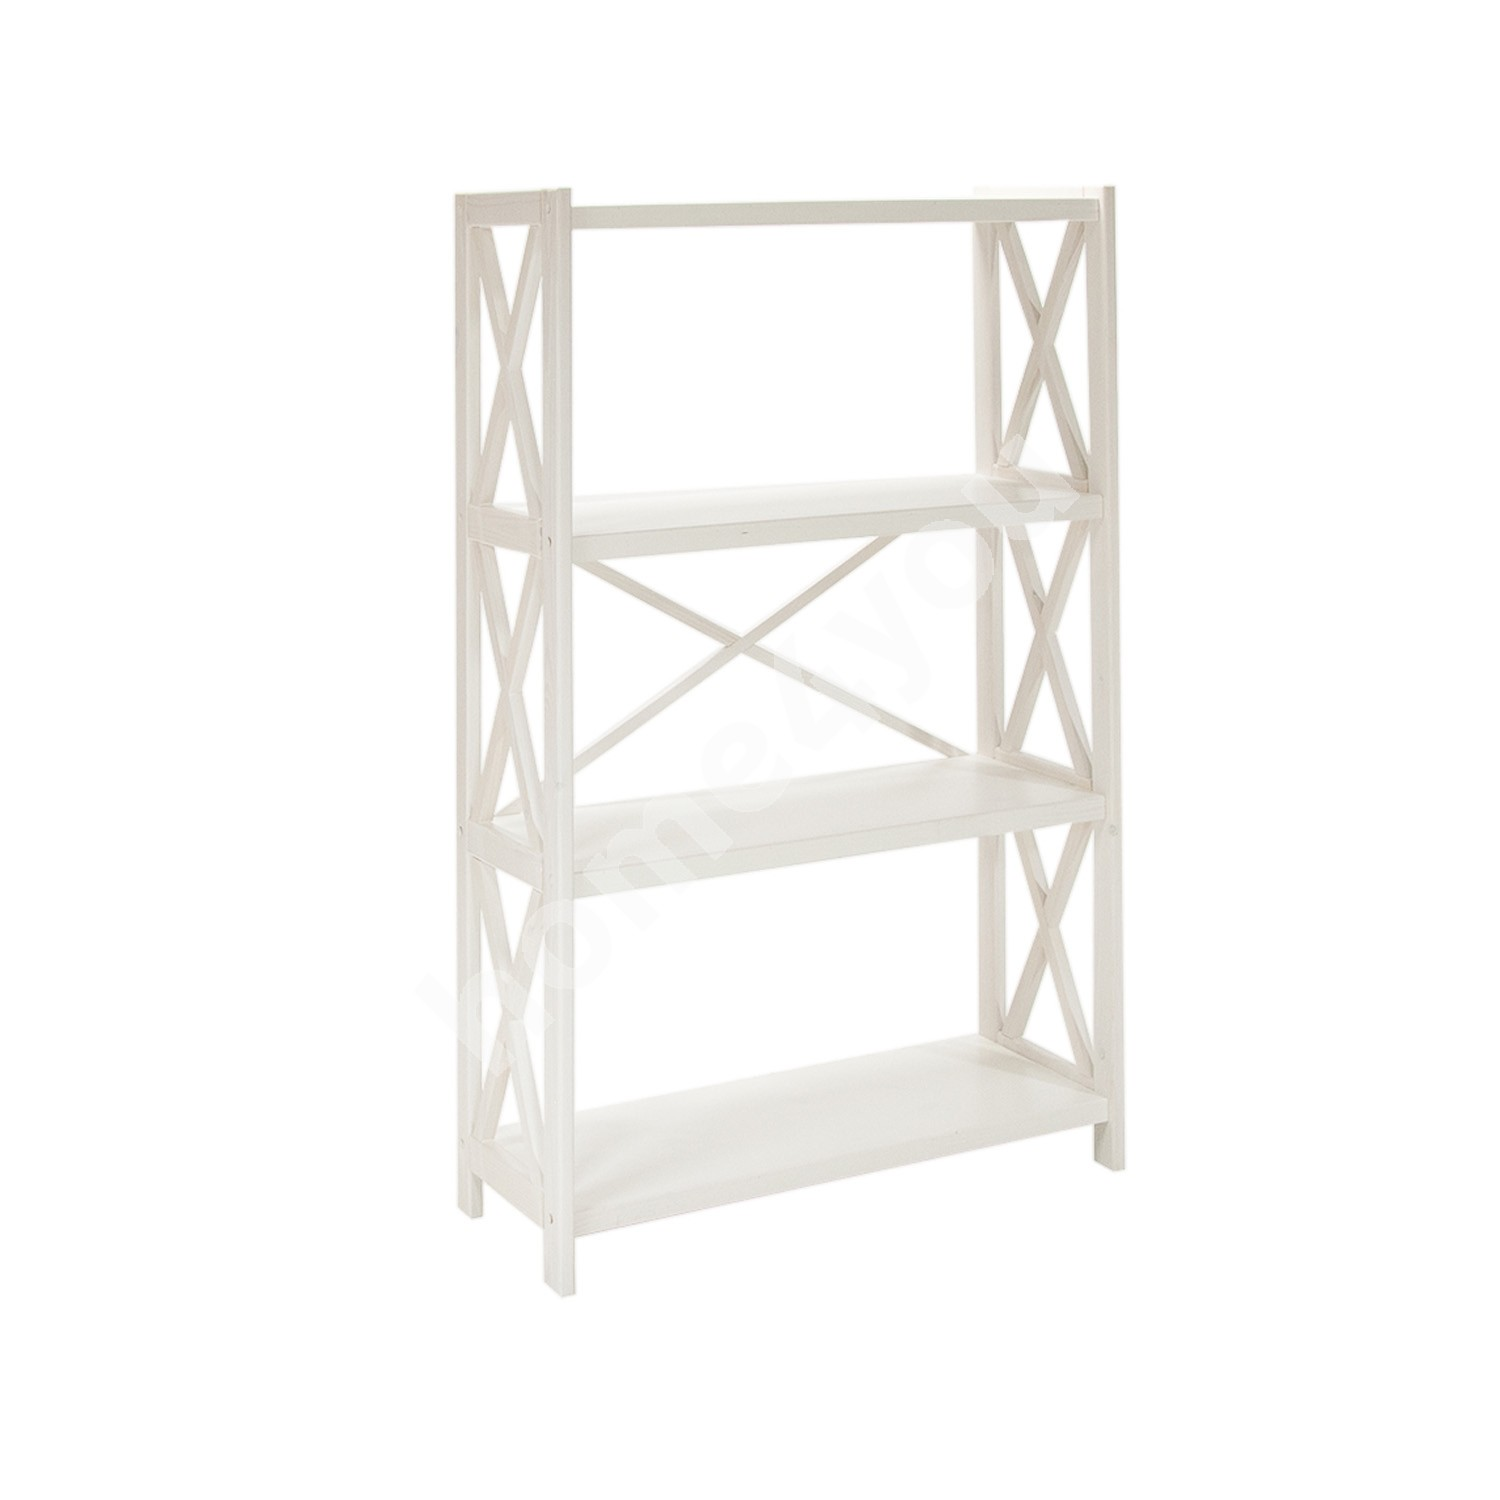 Shelf ALEX 4-tier, 80x31xH123cm, wood: pine, color: white